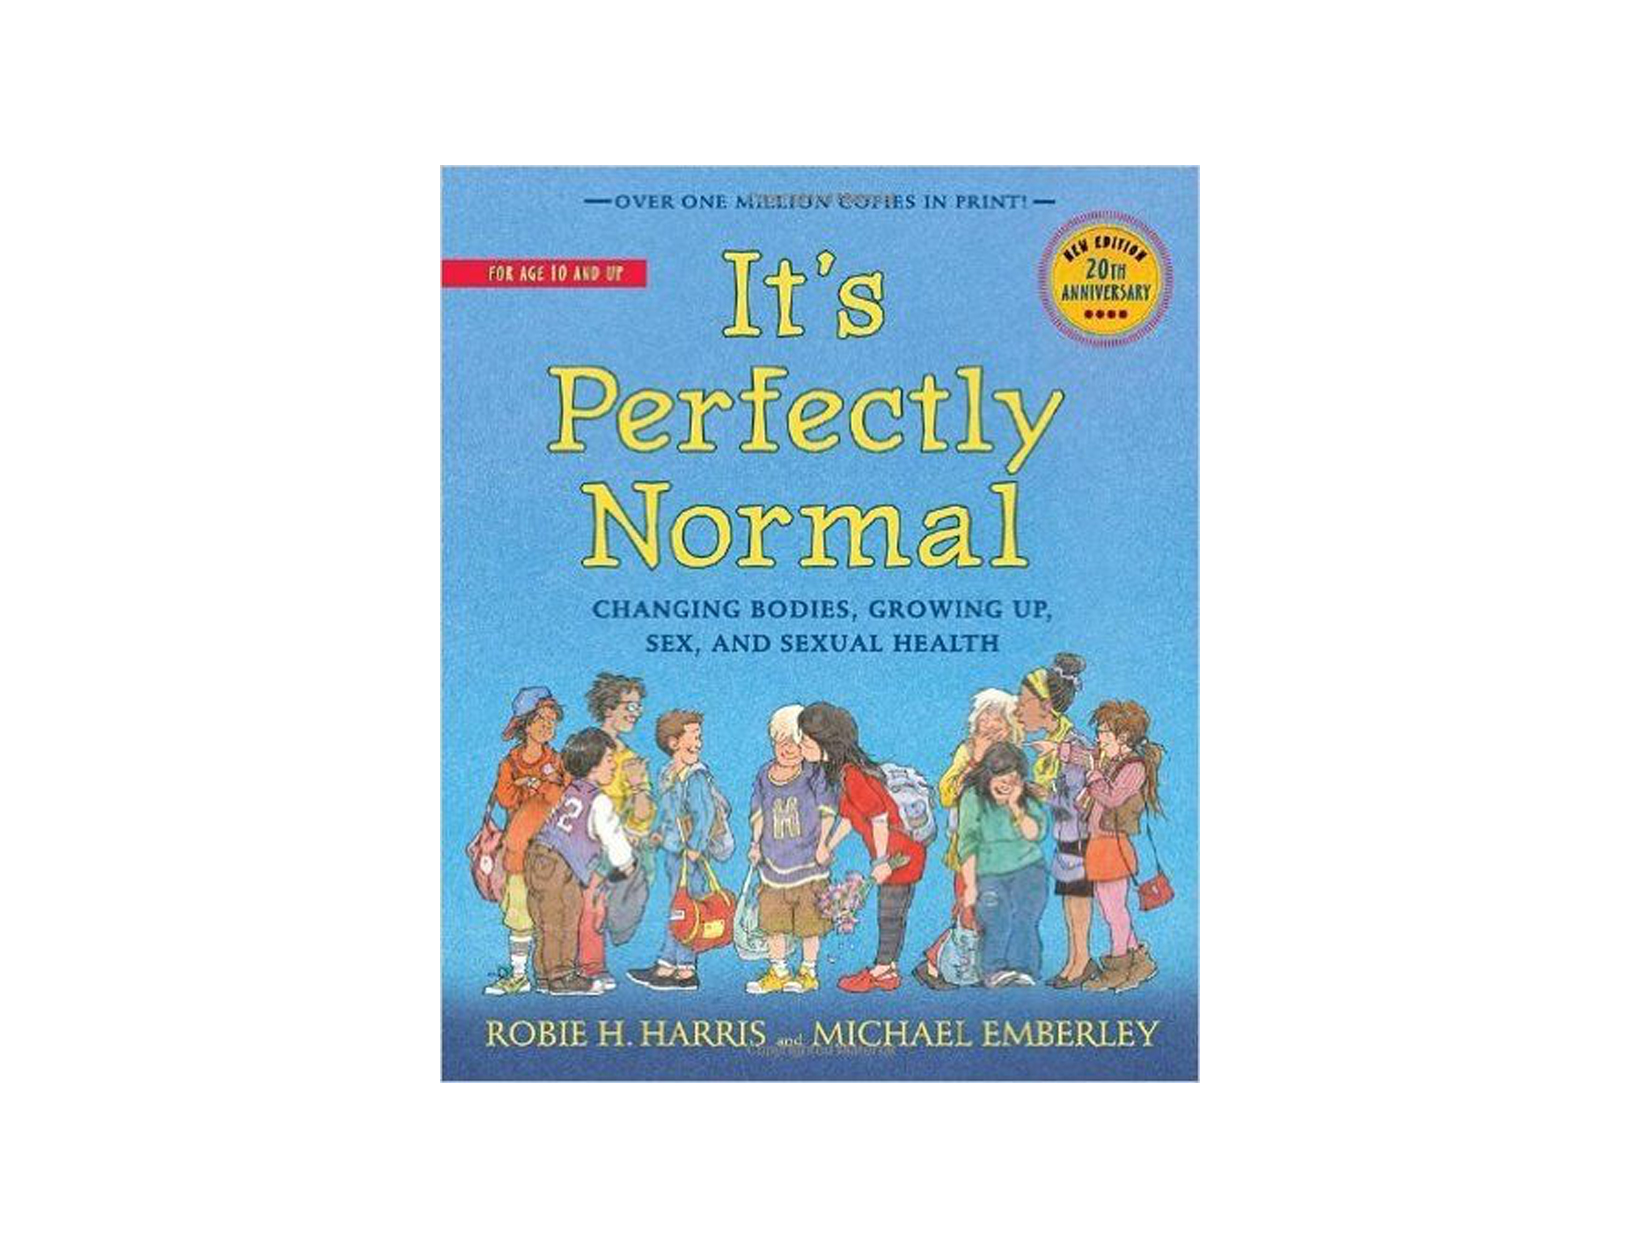 It's Perfectly Normal by Robbie H. Harris